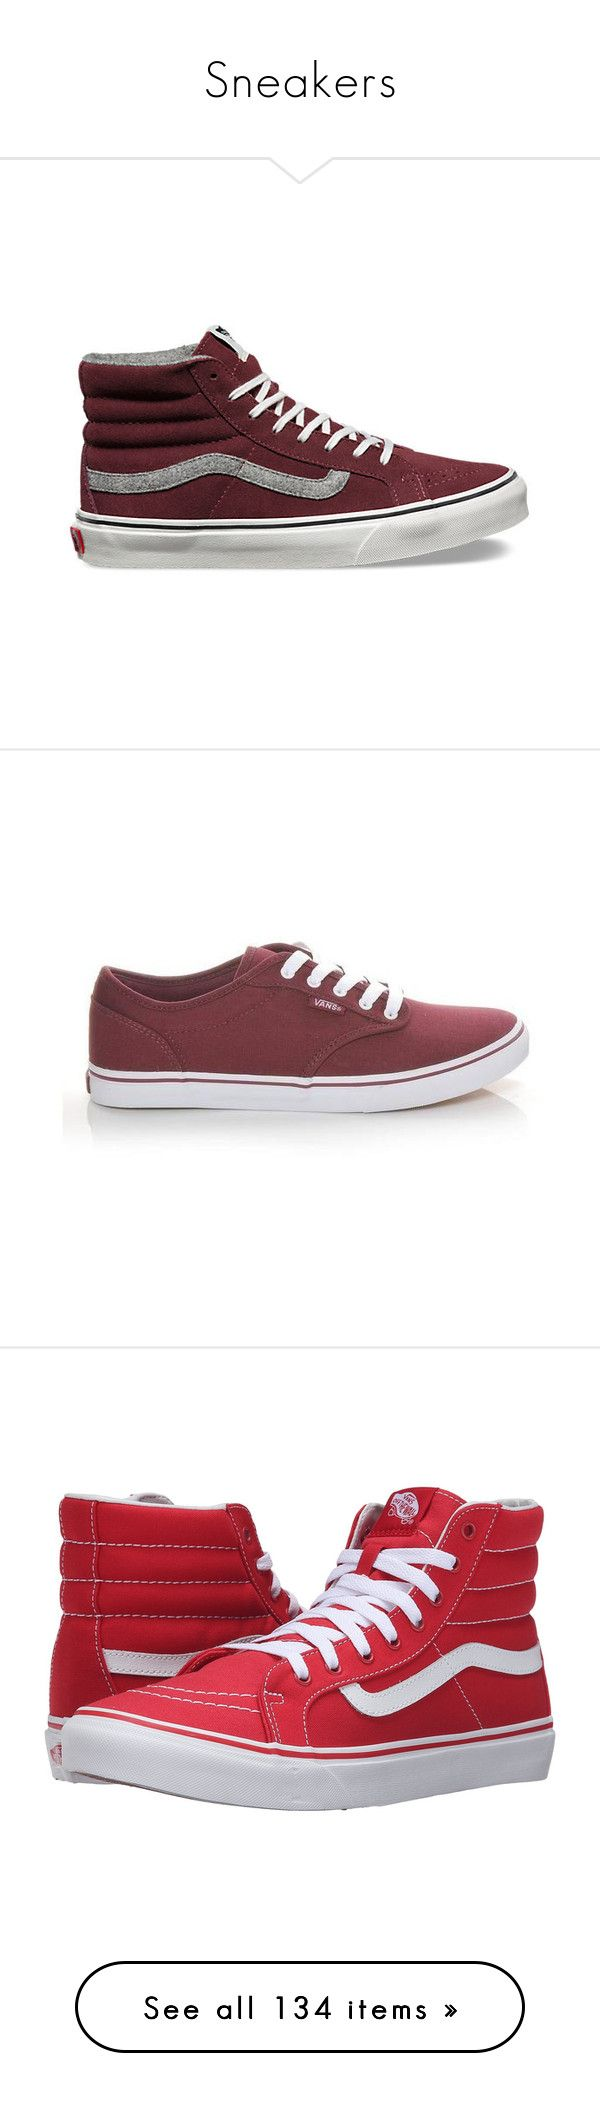 """""""Sneakers"""" by diana97-i ❤ liked on Polyvore featuring sneakers, shoes, red mahogany, vans high tops, red suede sneakers, suede shoes, red sneakers, red hi top sneakers, dressy shoes and low sneakers"""